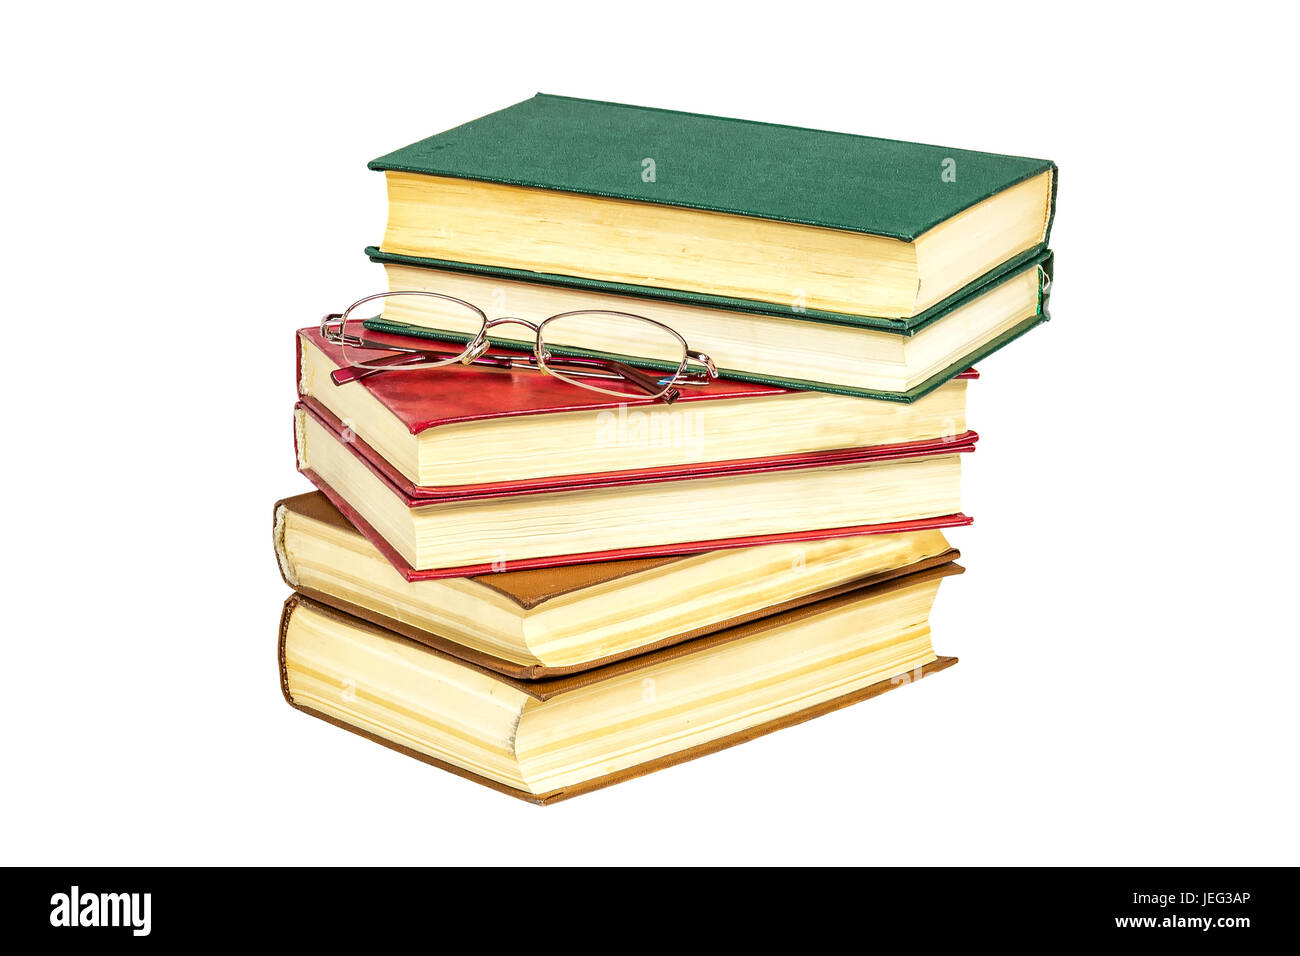 on a pile of hard bound books lie reading glasses stock photo